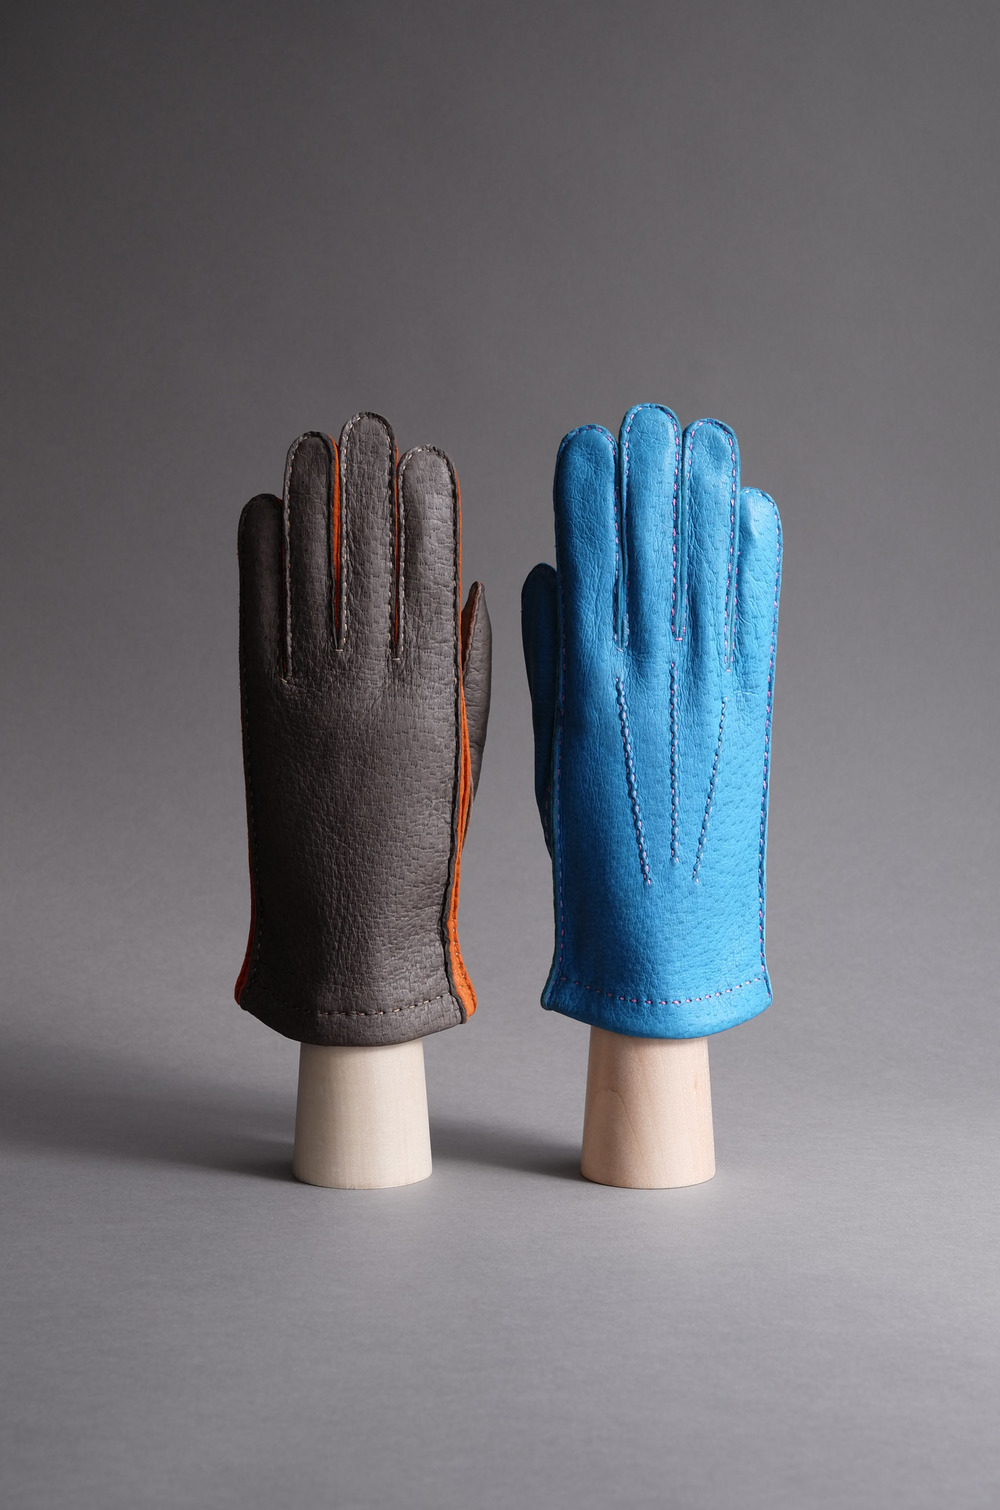 Thomas Riemer peccary gloves